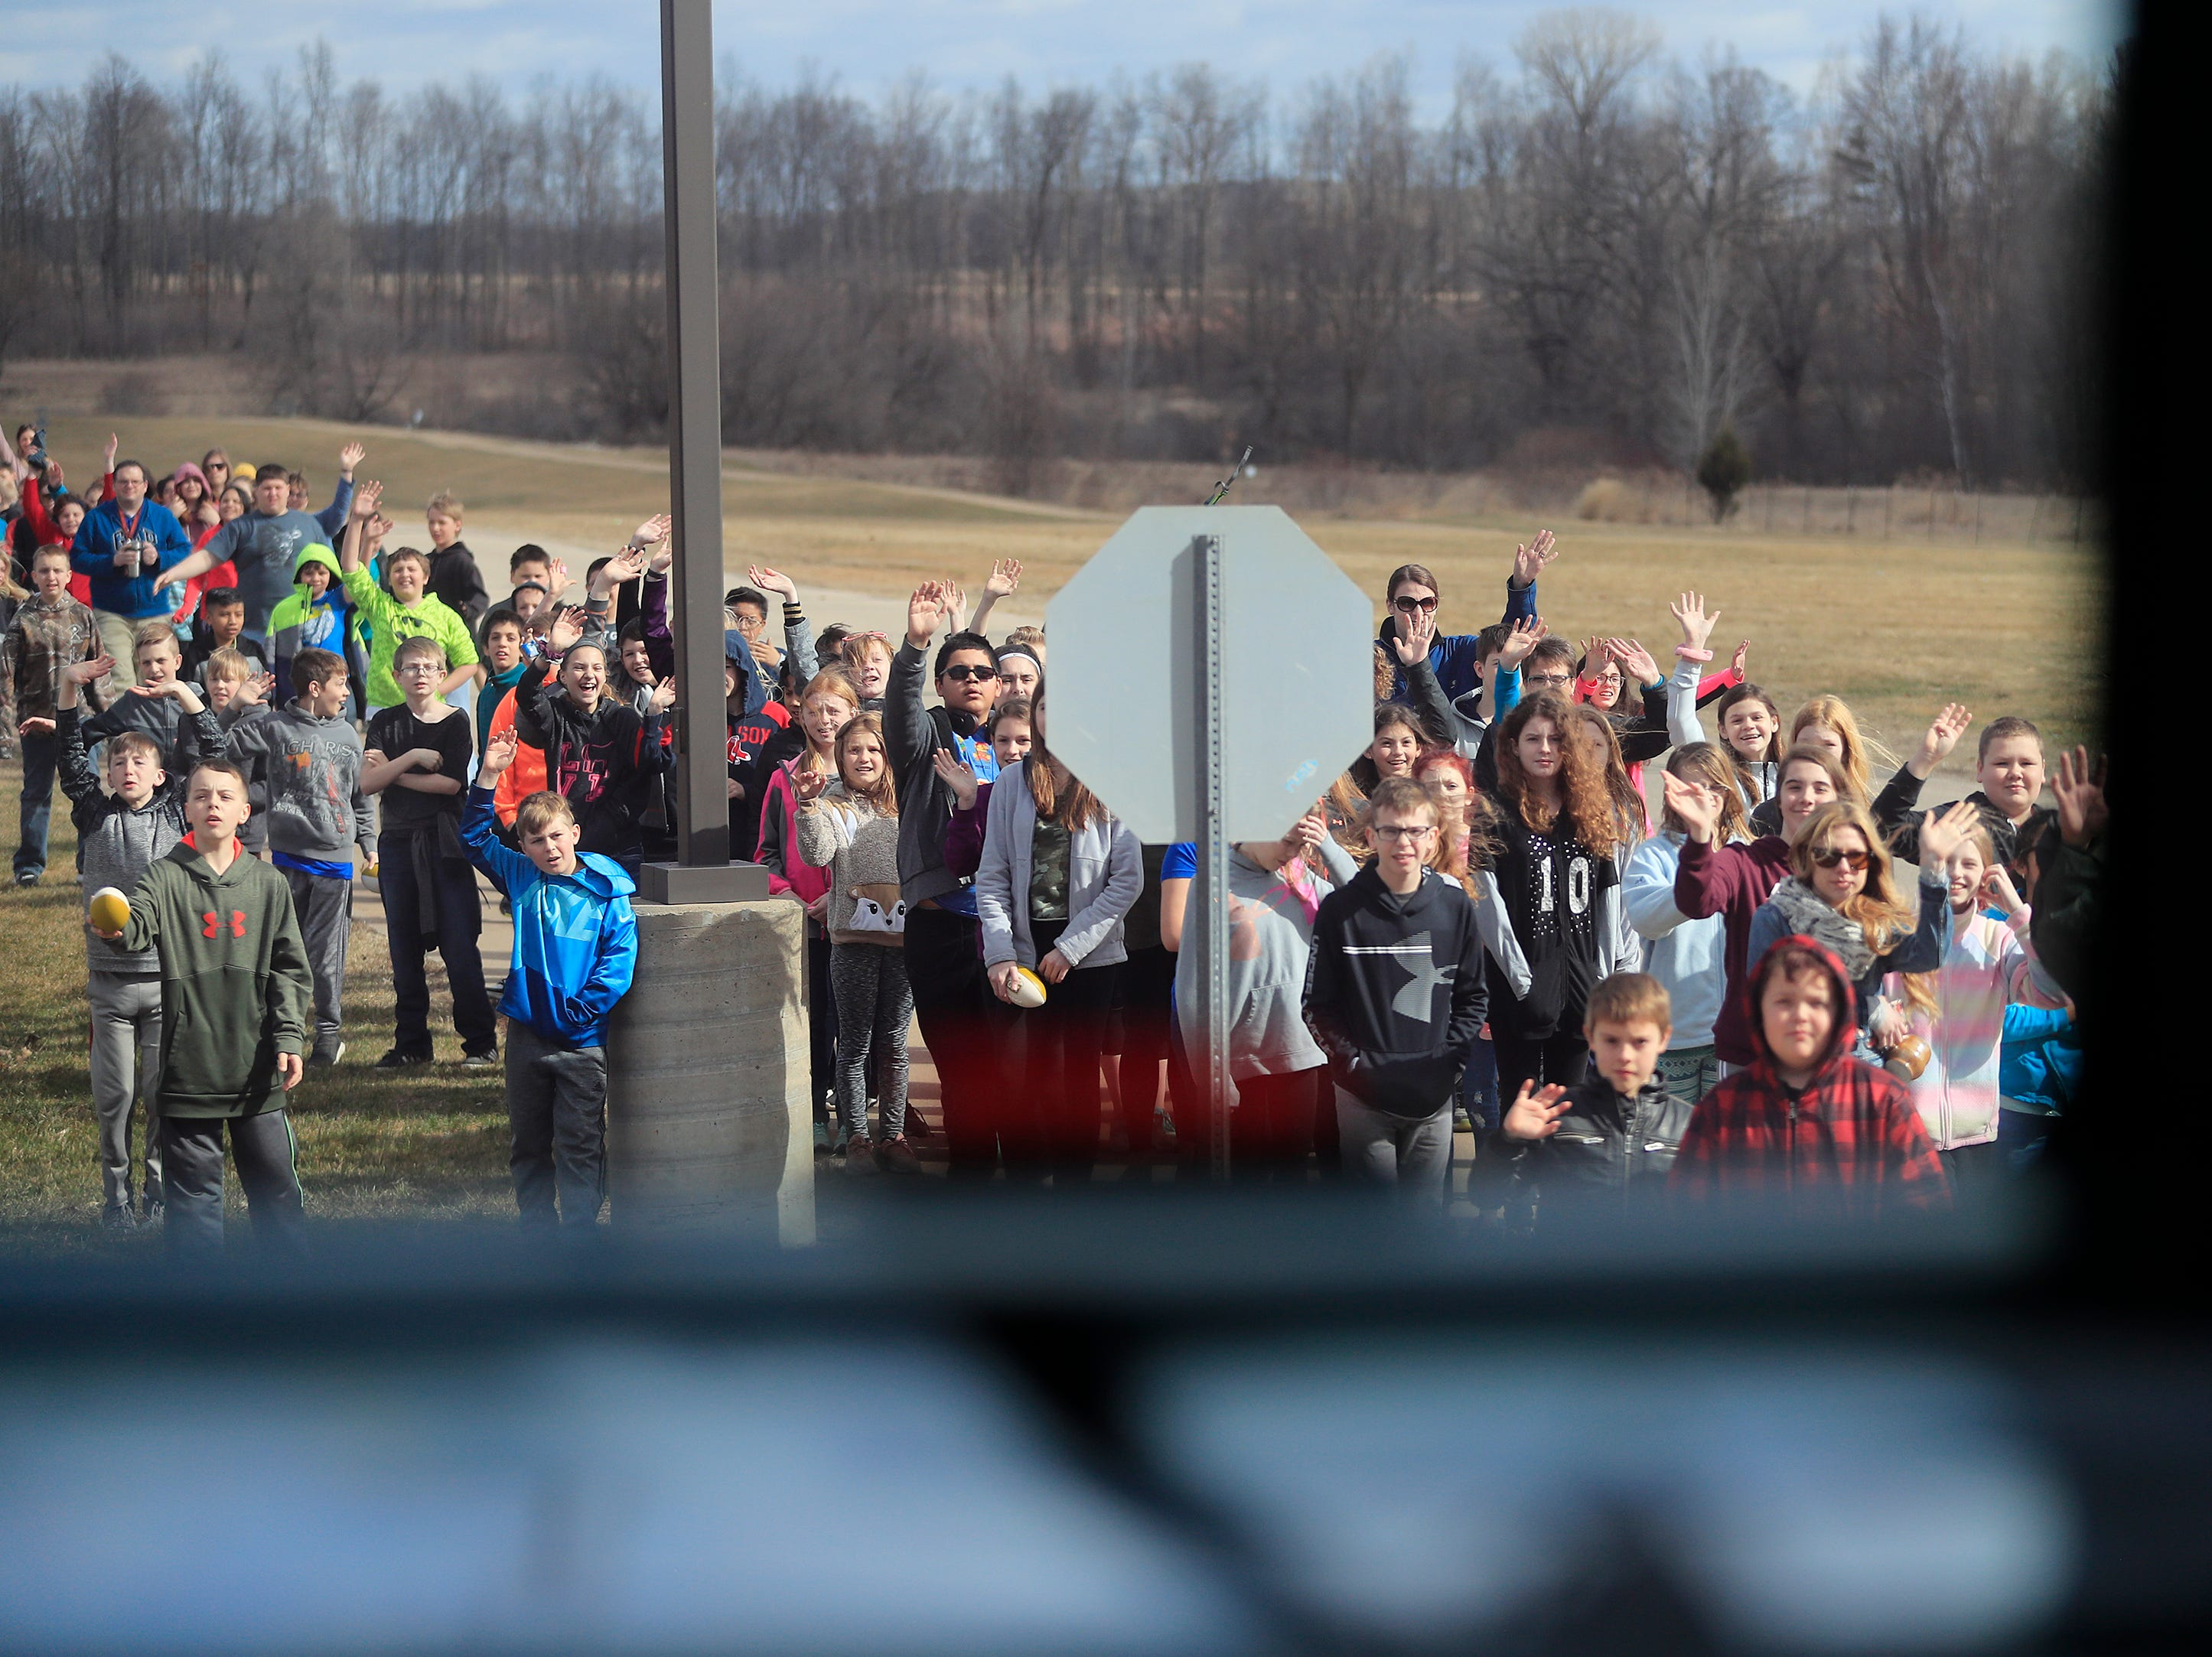 Students wave as the Green Bay Packers bus departs from a stop on the Packers Tailgate Tour at Clintonville High School on Tuesday, April 9, 2019 in Clintonville, Wis.